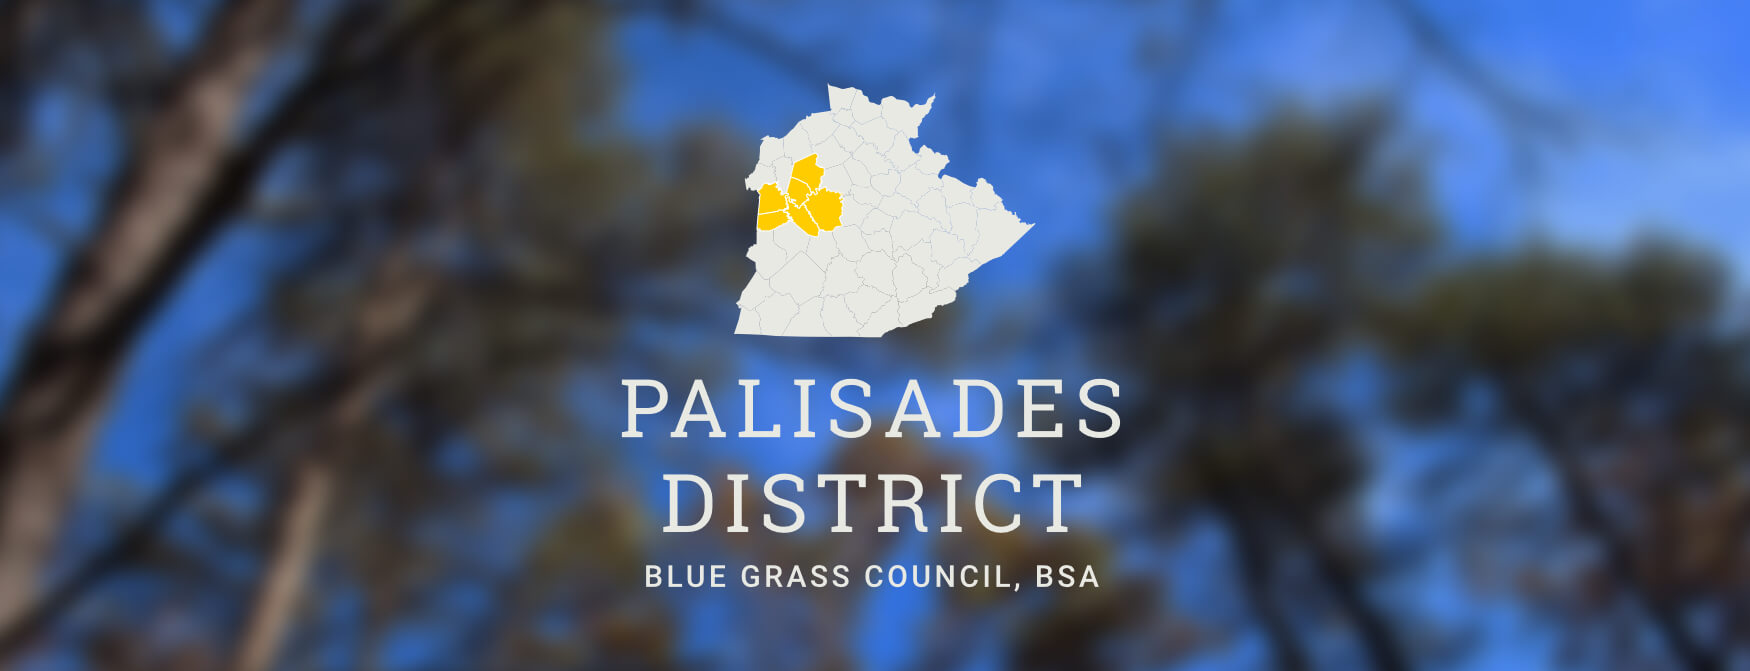 Palisades District